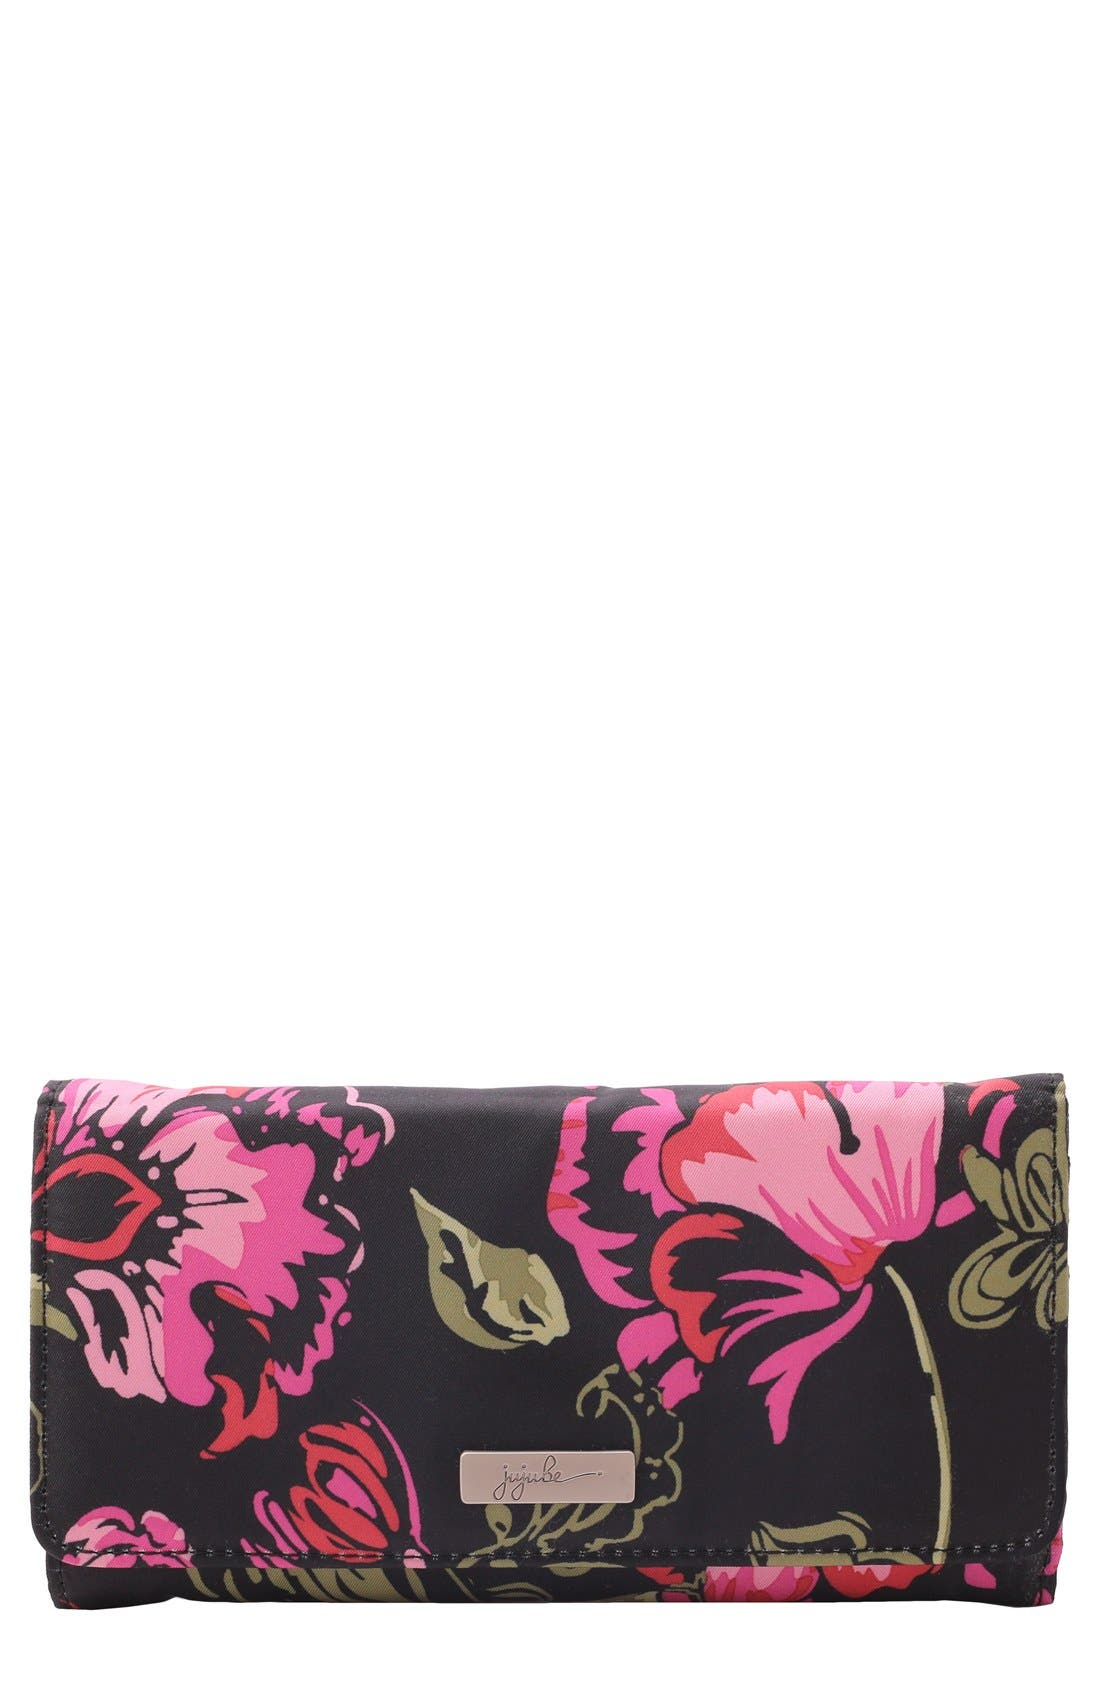 Legacy Be Rich Trifold Clutch Wallet,                             Main thumbnail 1, color,                             003